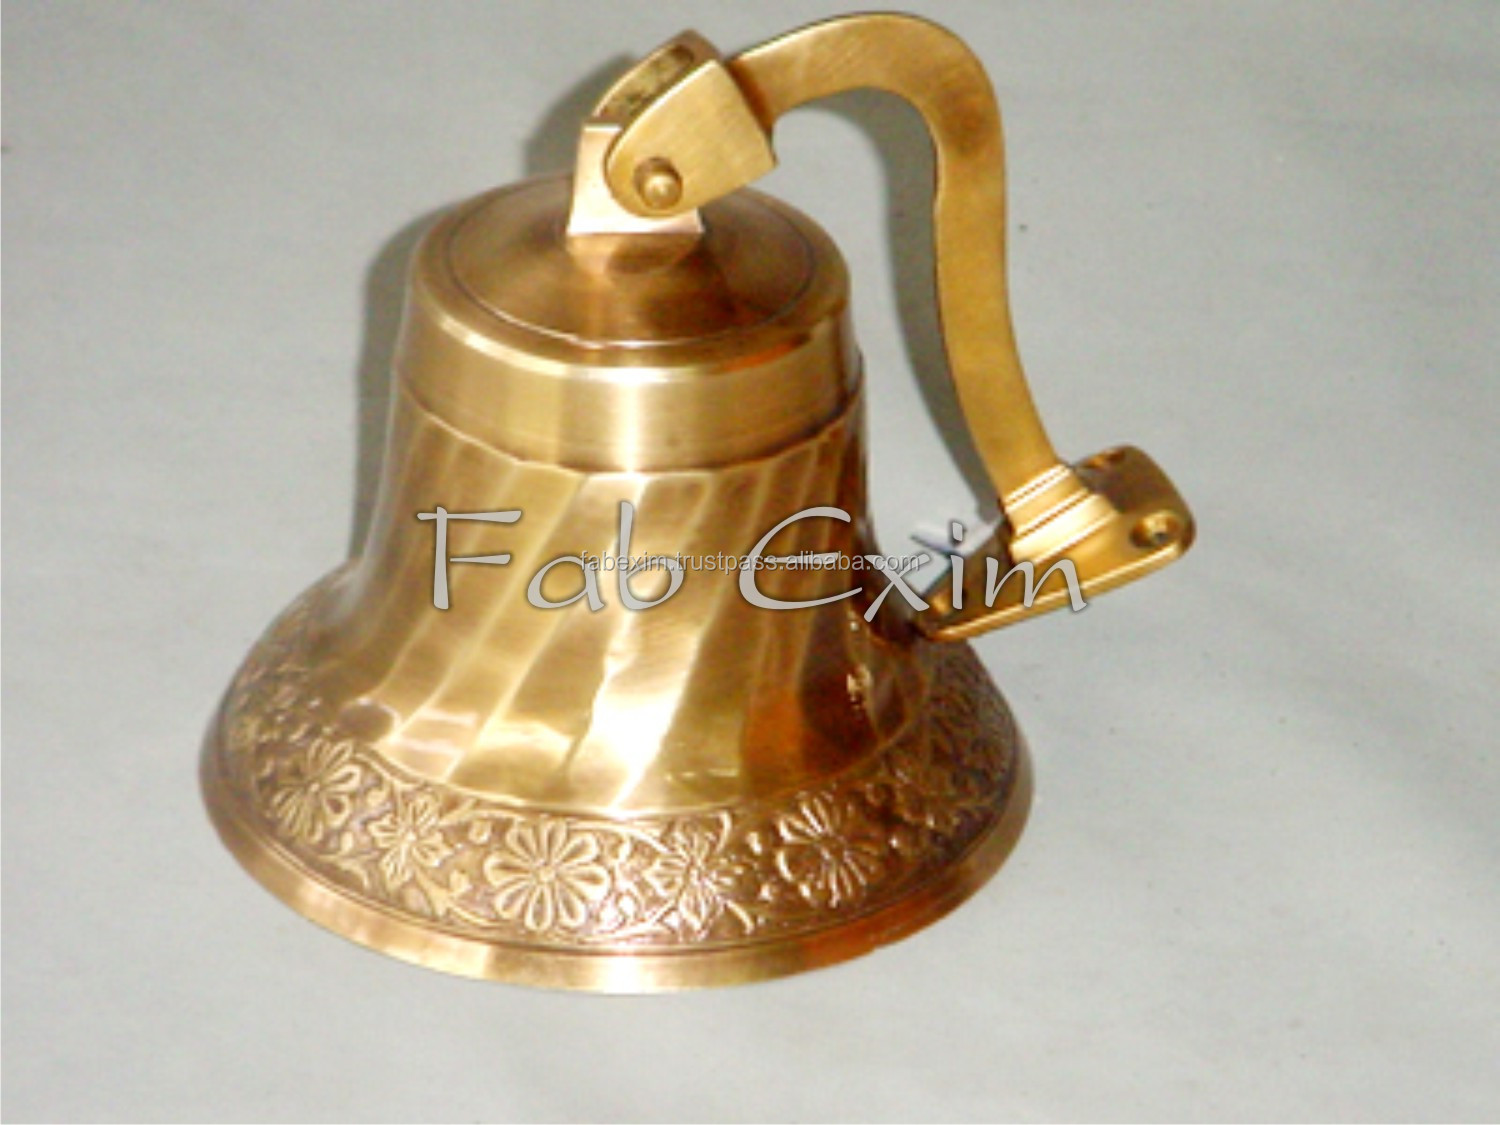 Brass Ship Bell, Church Bell, Wall Mounted Brass Bell